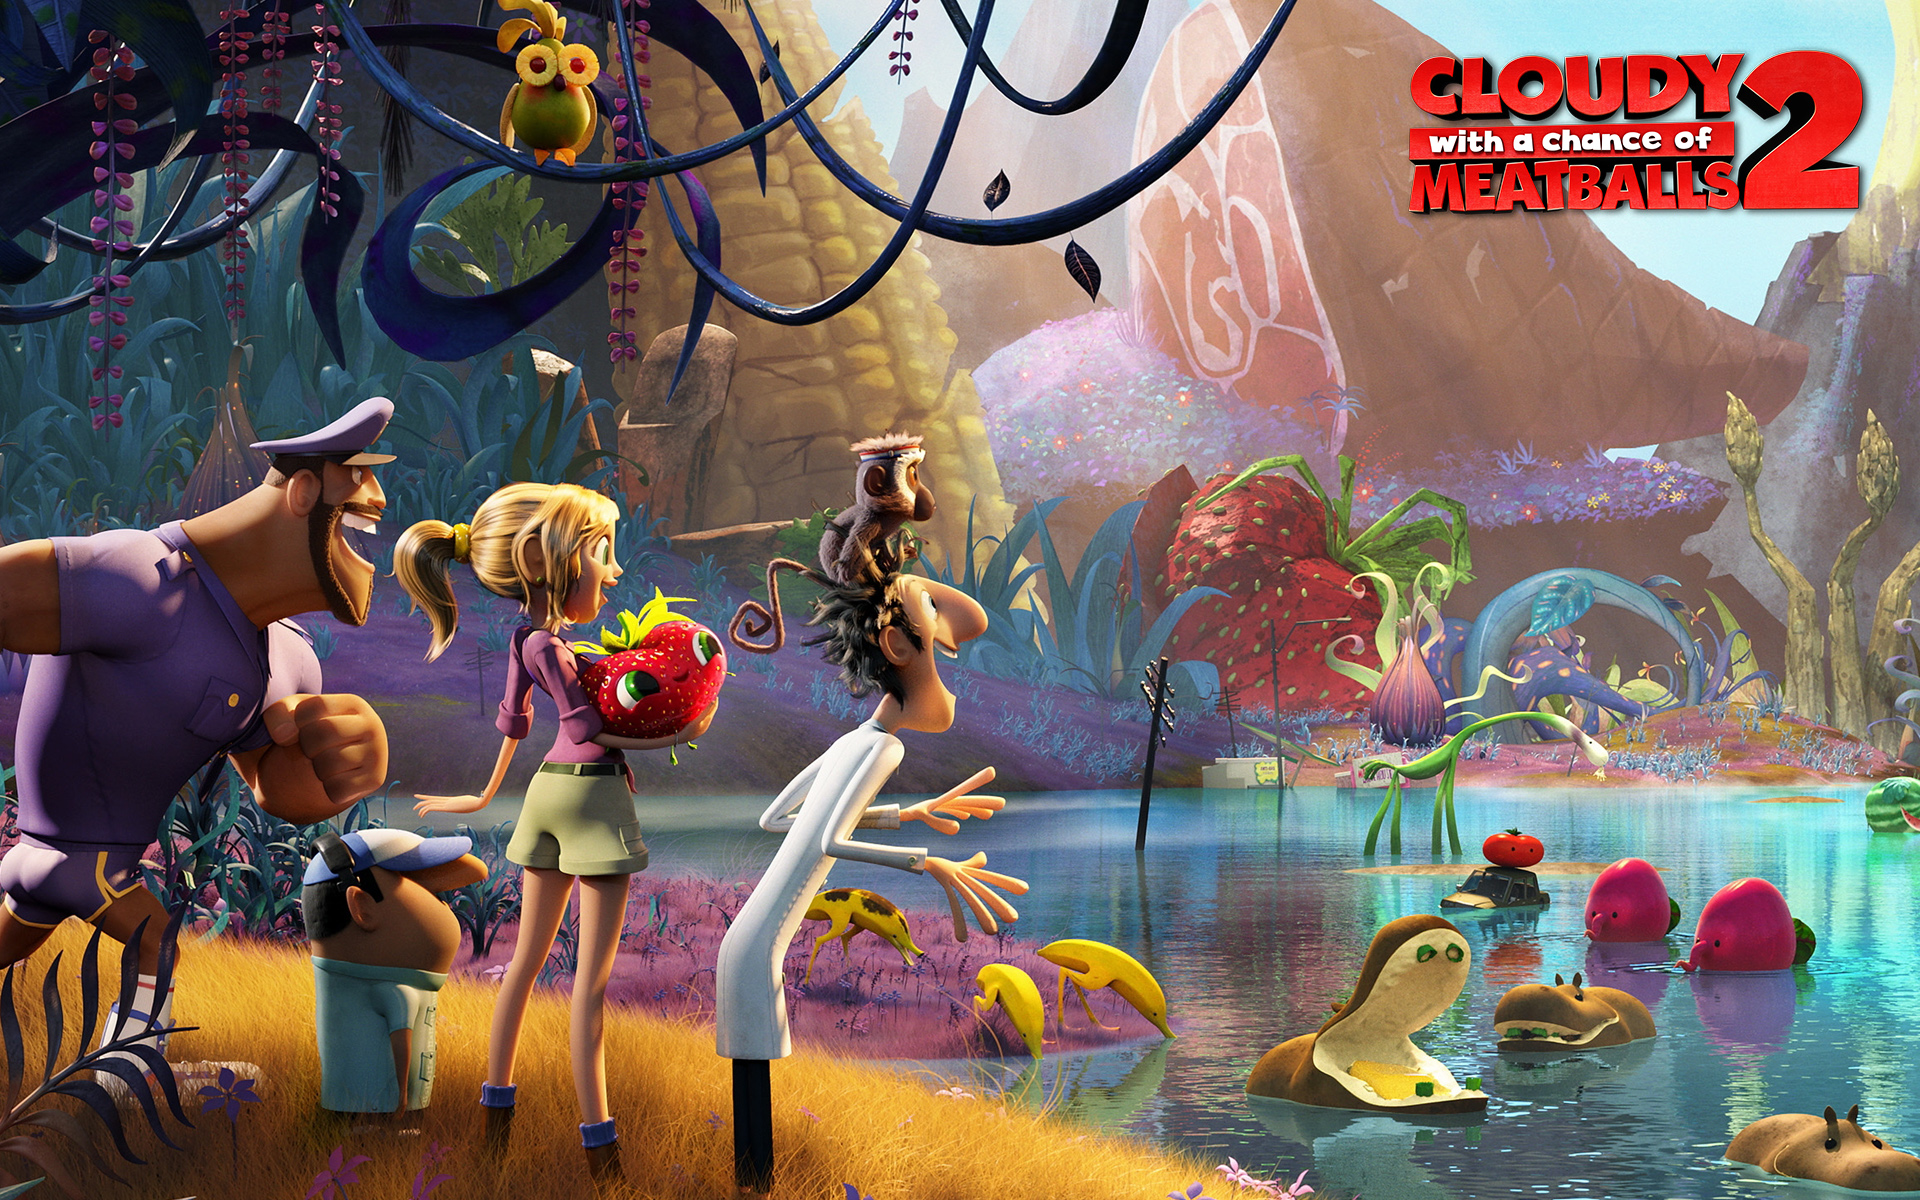 Cloudy with a chance of meatballs 2 (2013) rotten tomatoes.